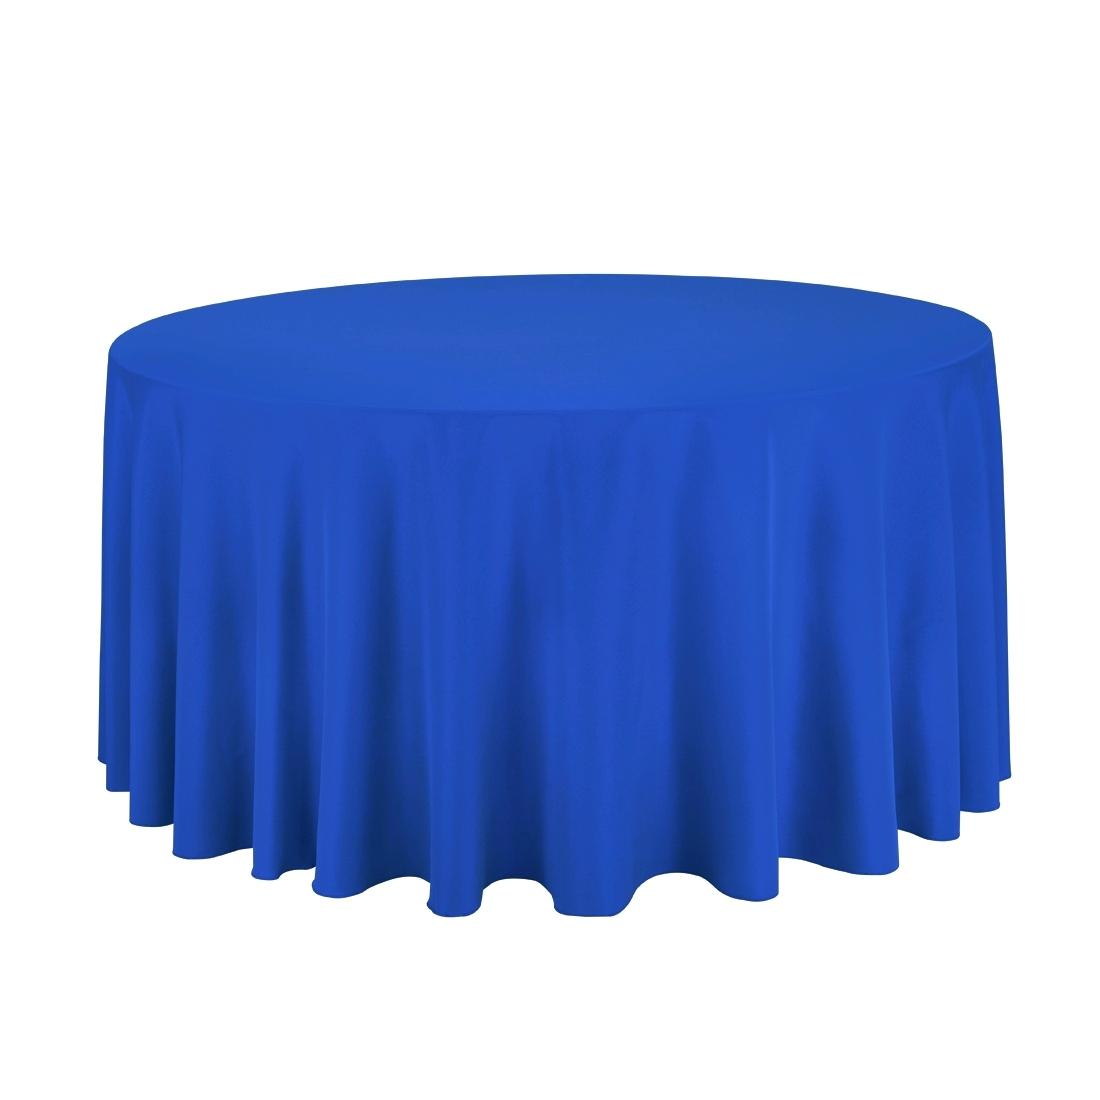 Tablecloth clipart free graphic royalty free library Tablecloth Clipart   Free download best Tablecloth Clipart ... graphic royalty free library